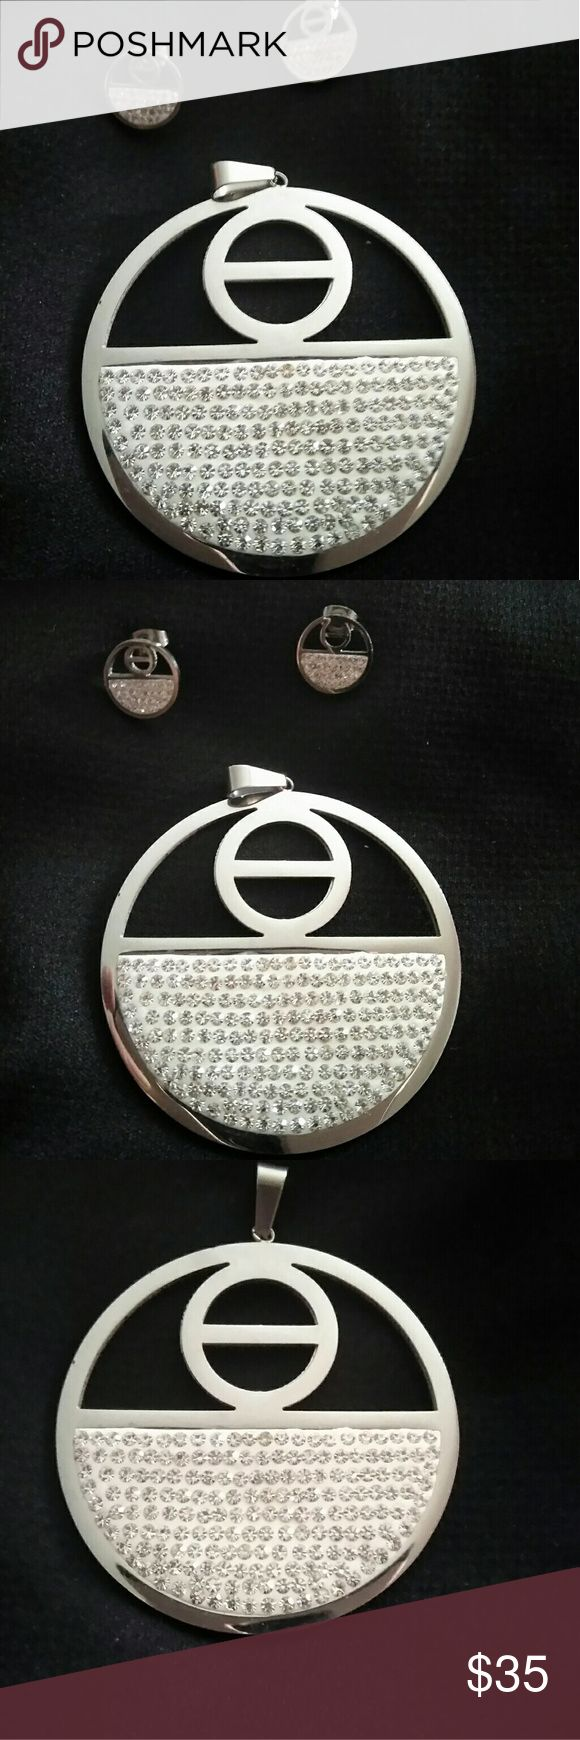 Earrings with its stainless steel necklace Earrings with its stainless steel necklace stainless steel Jewelry Necklaces